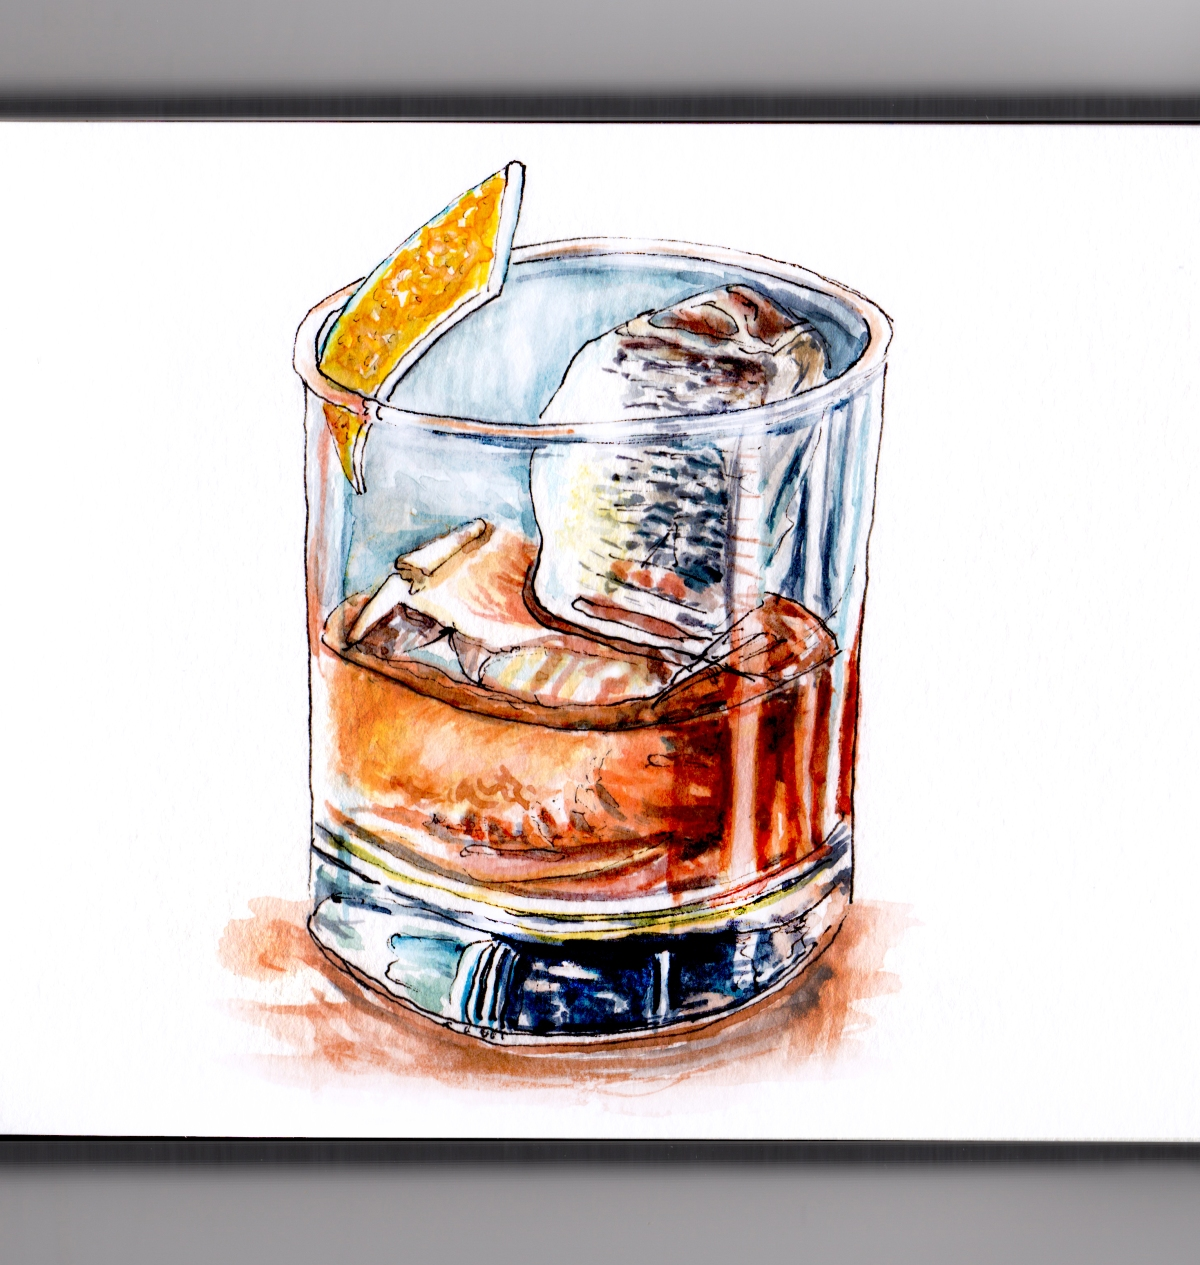 Day 30 - #WorldWatercolorGroup - Climax - Whiskey On The Rocks - #doodlewash